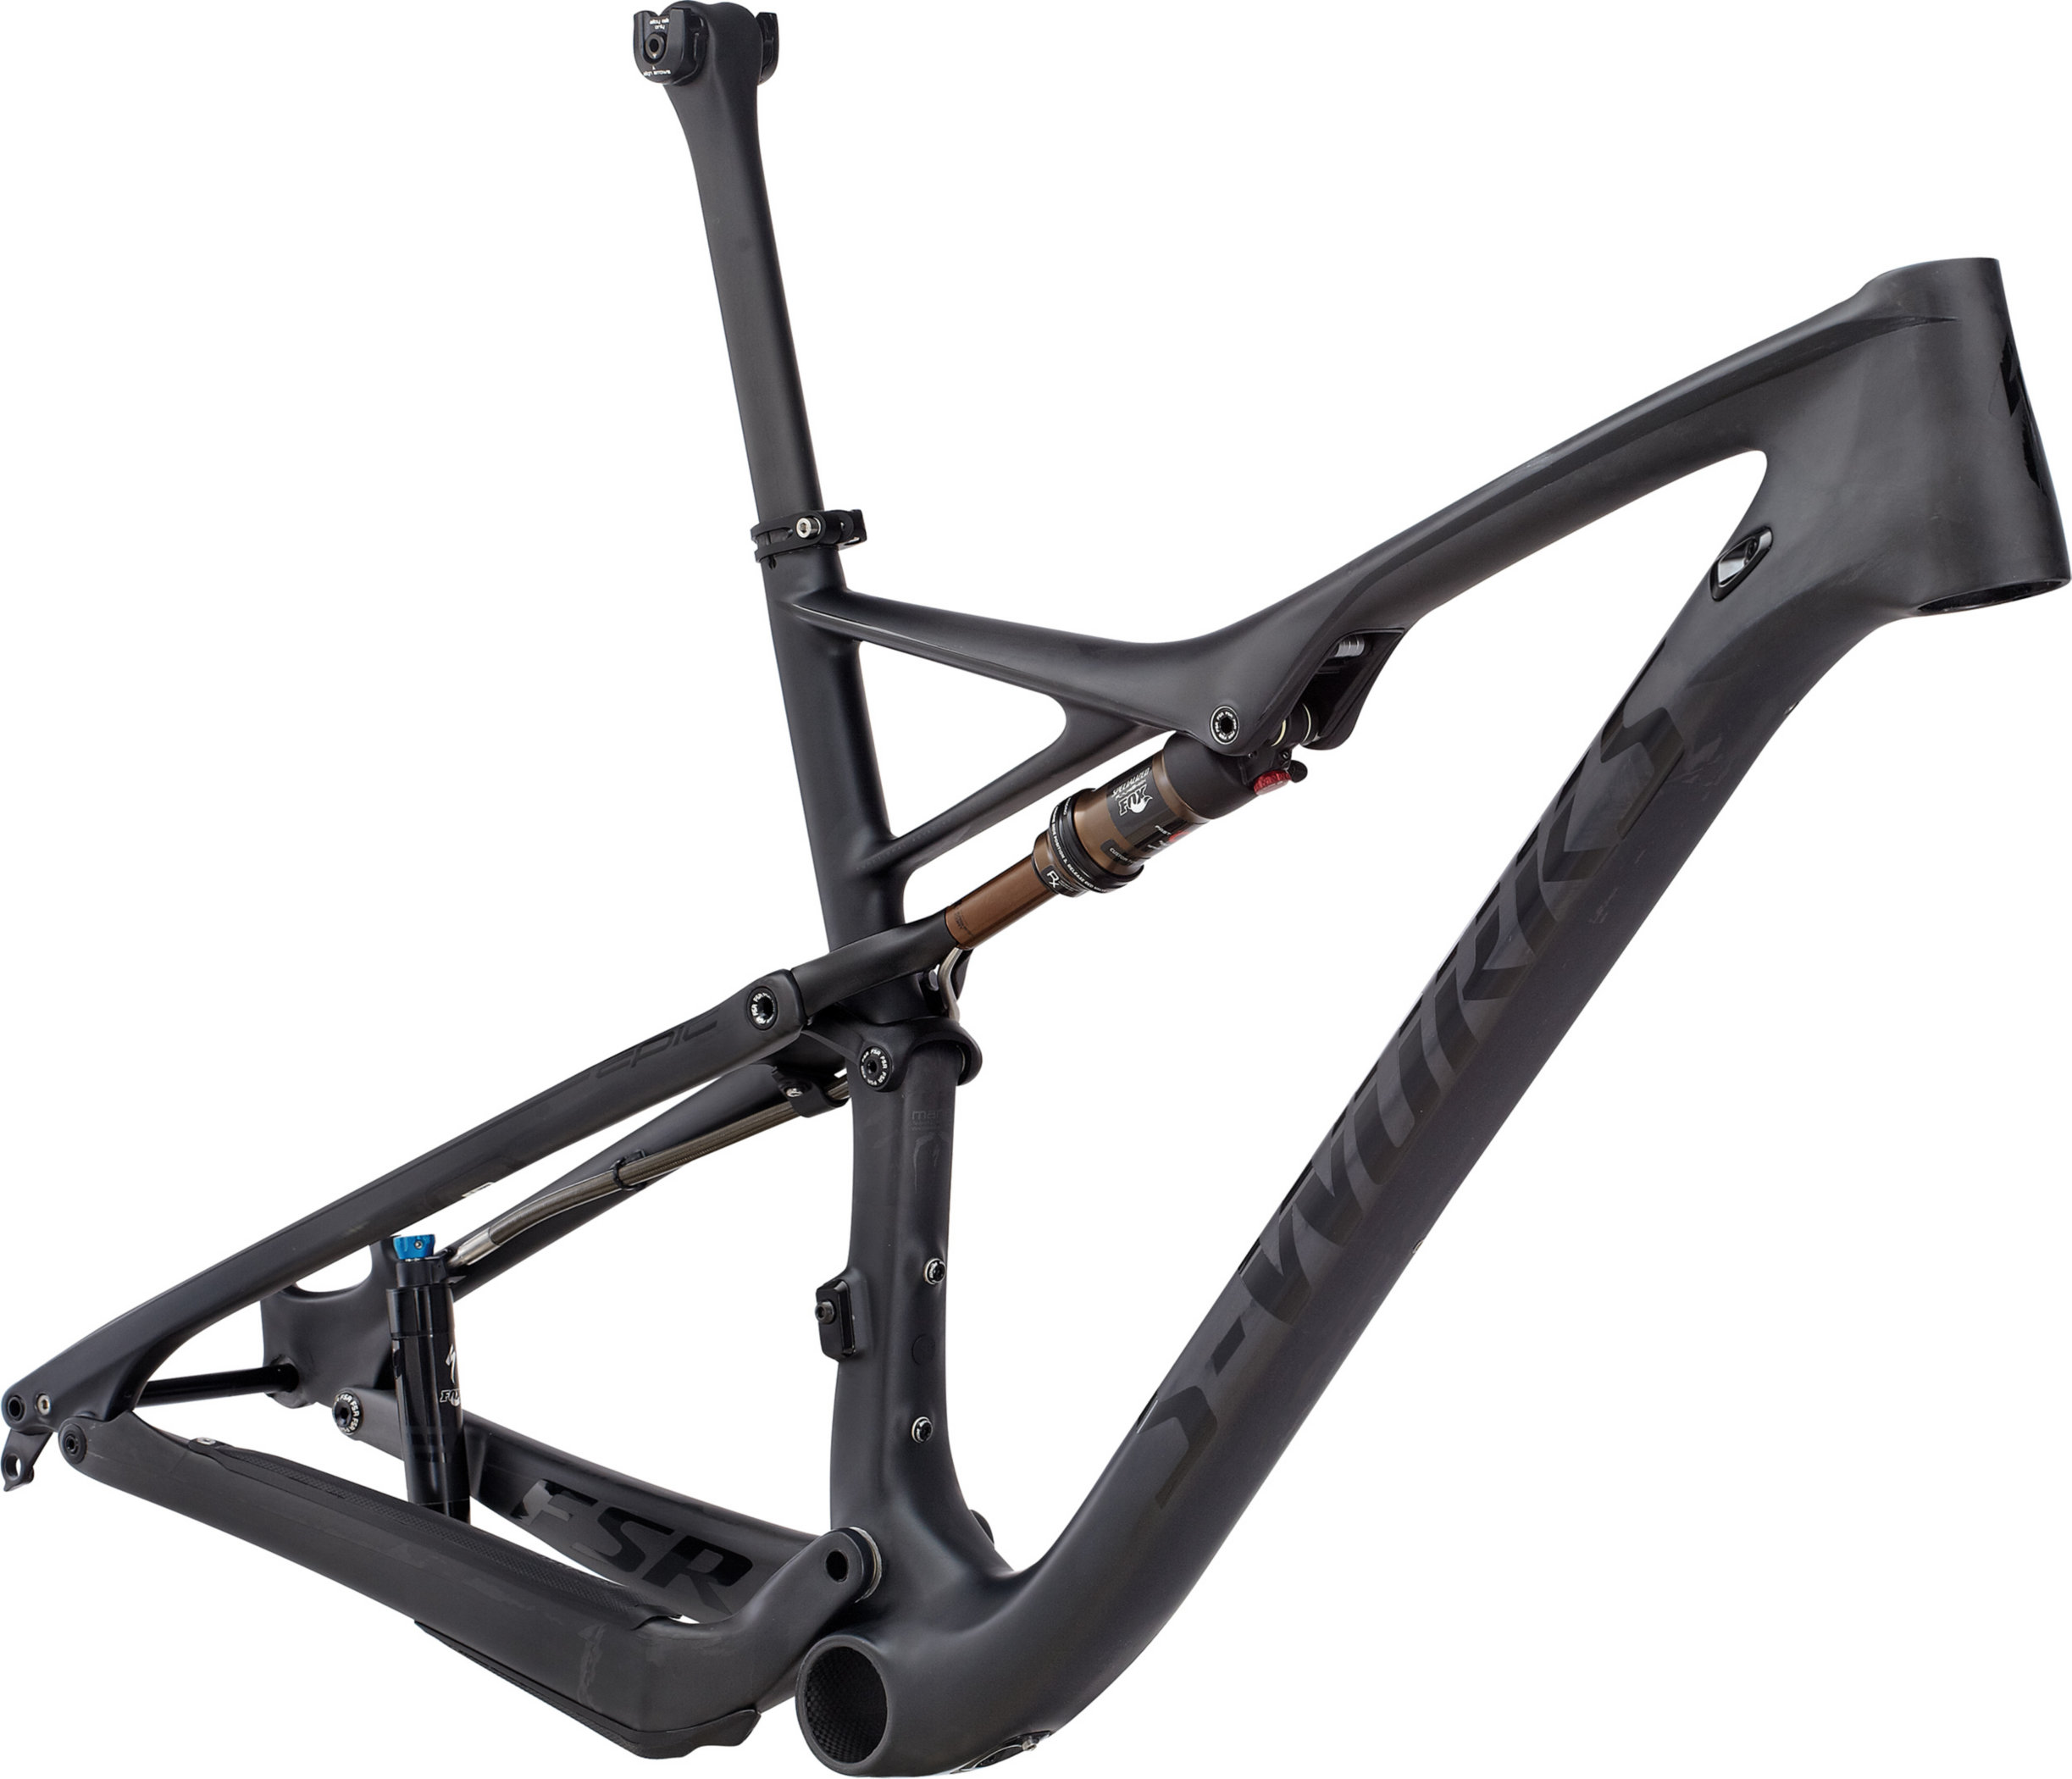 SPECIALIZED SW EPIC FSR CARBON 29 FRM CARB M - SPECIALIZED SW EPIC FSR CARBON 29 FRM CARB M